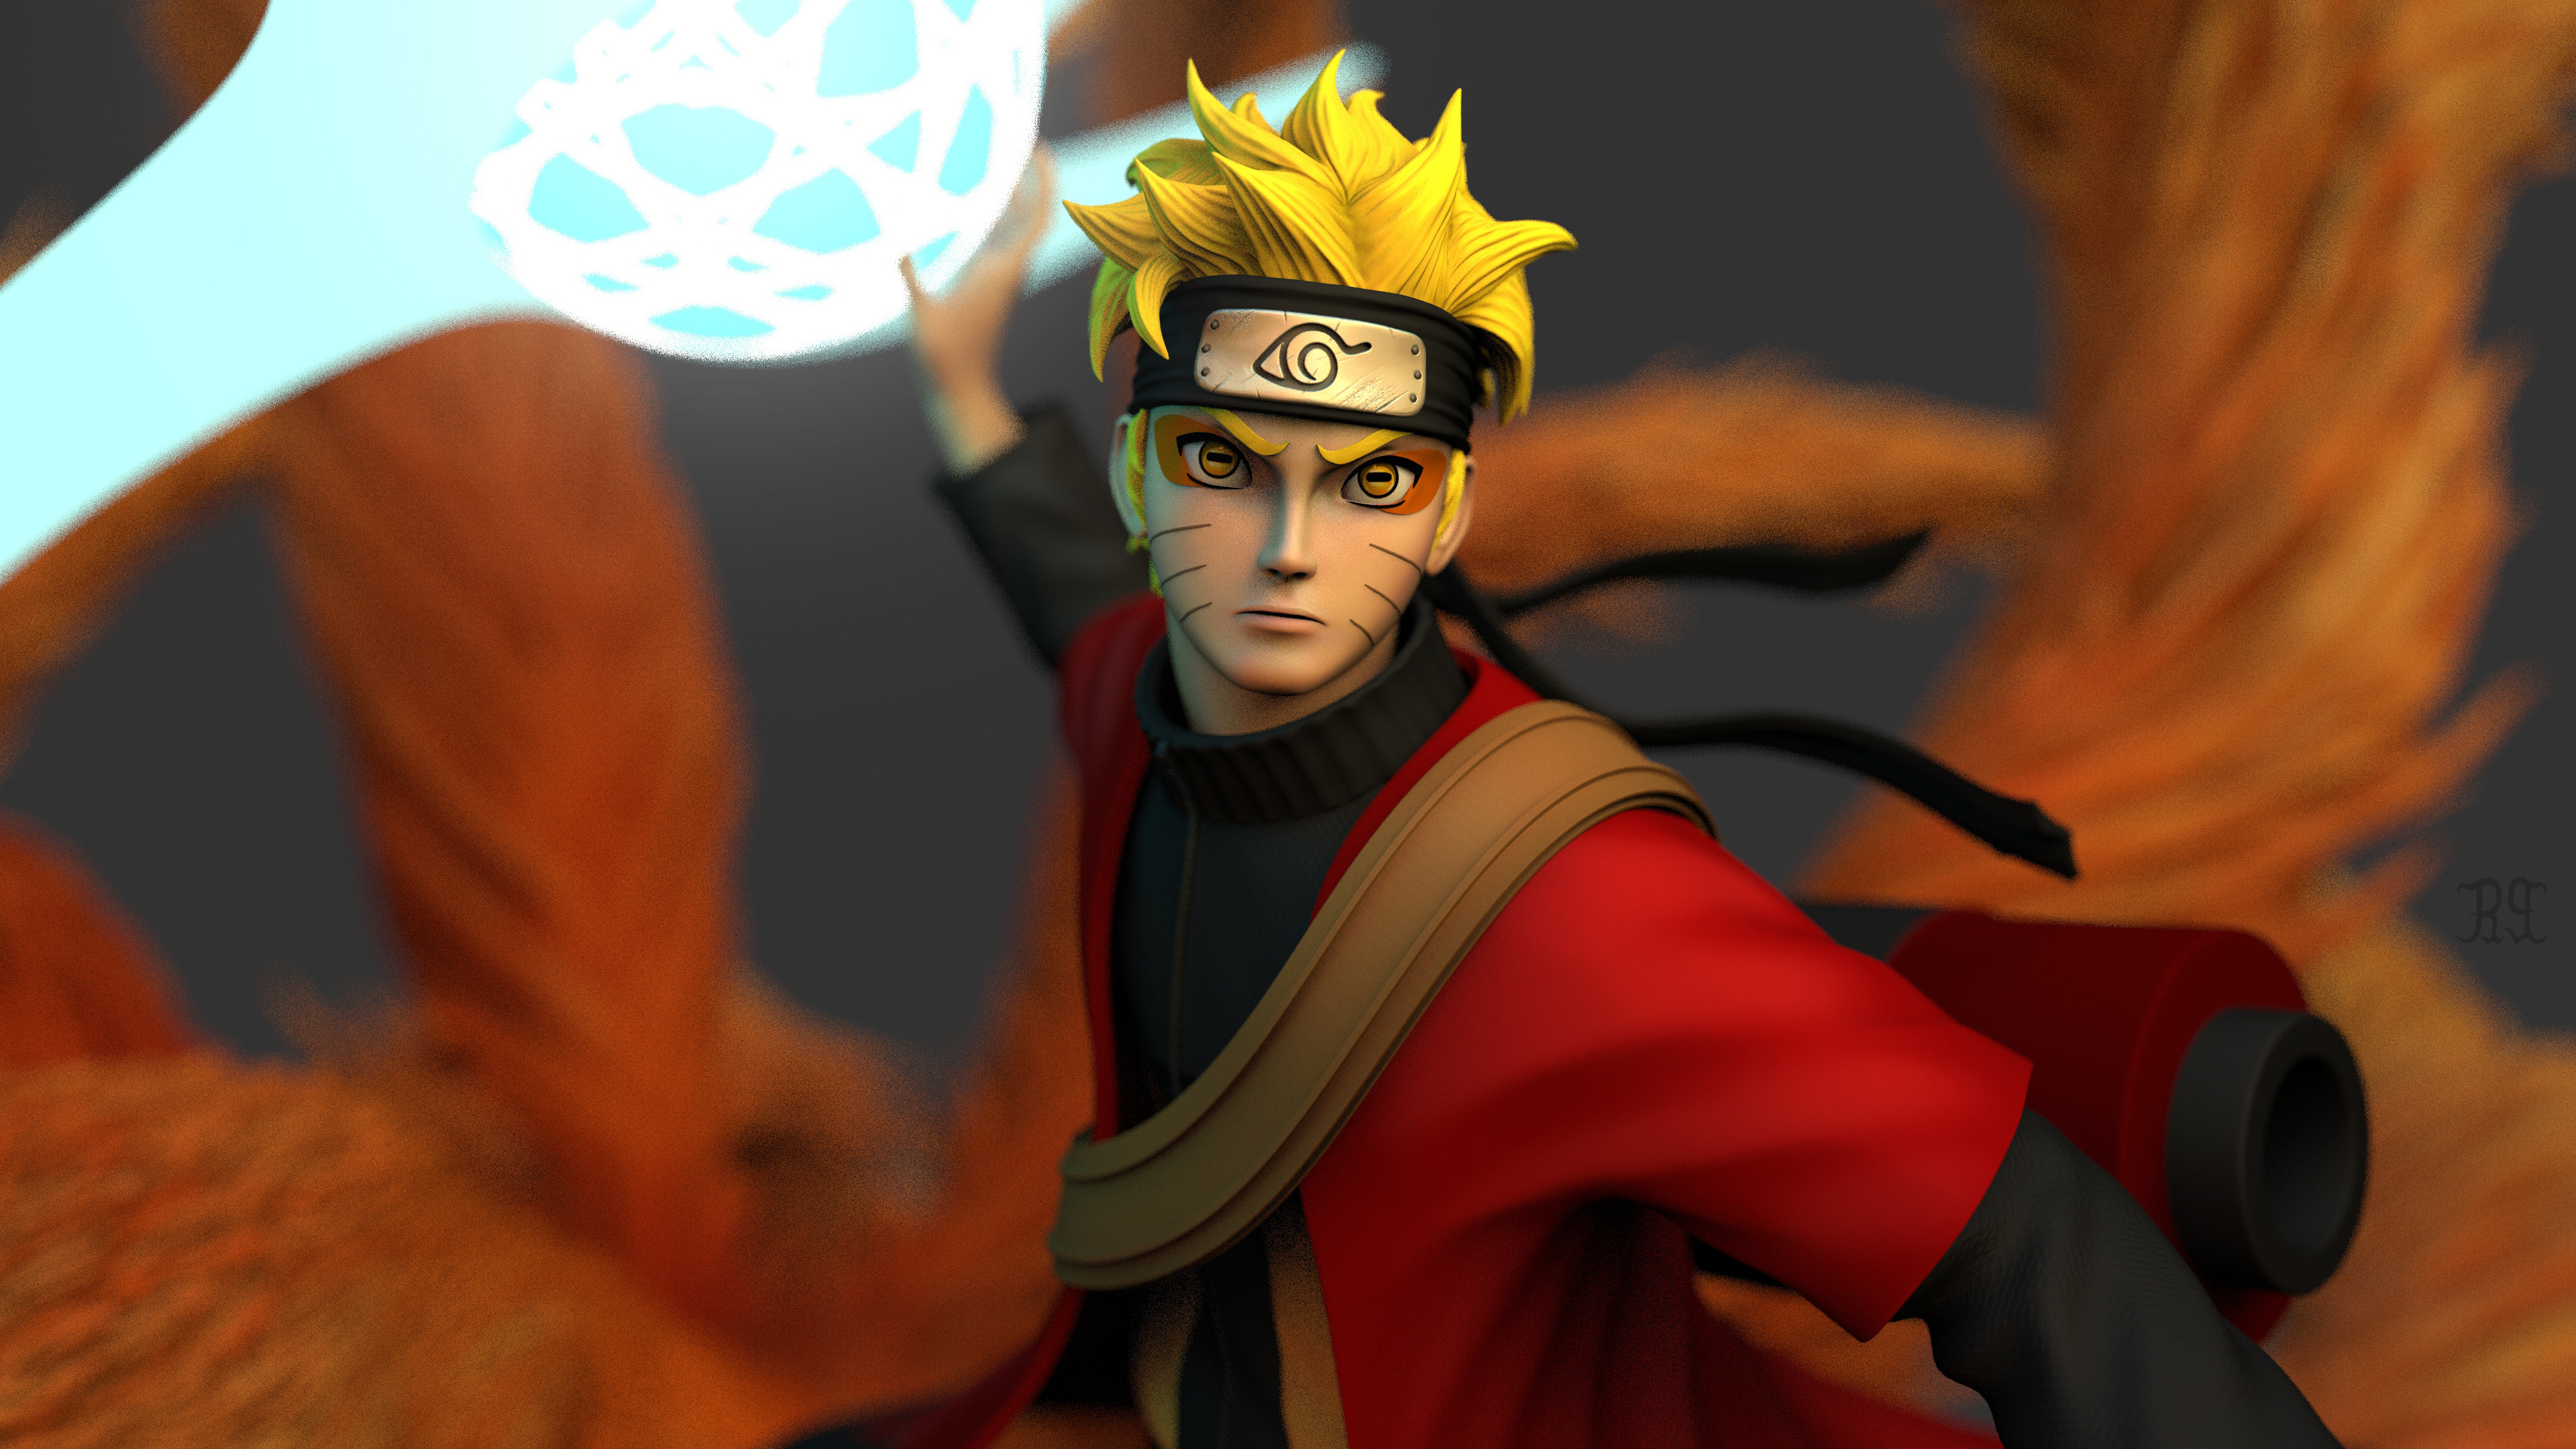 4k Naruto Uzumaki Wallpaper Hd Anime 4k Wallpapers Images Photos And Background Wallpapers Den